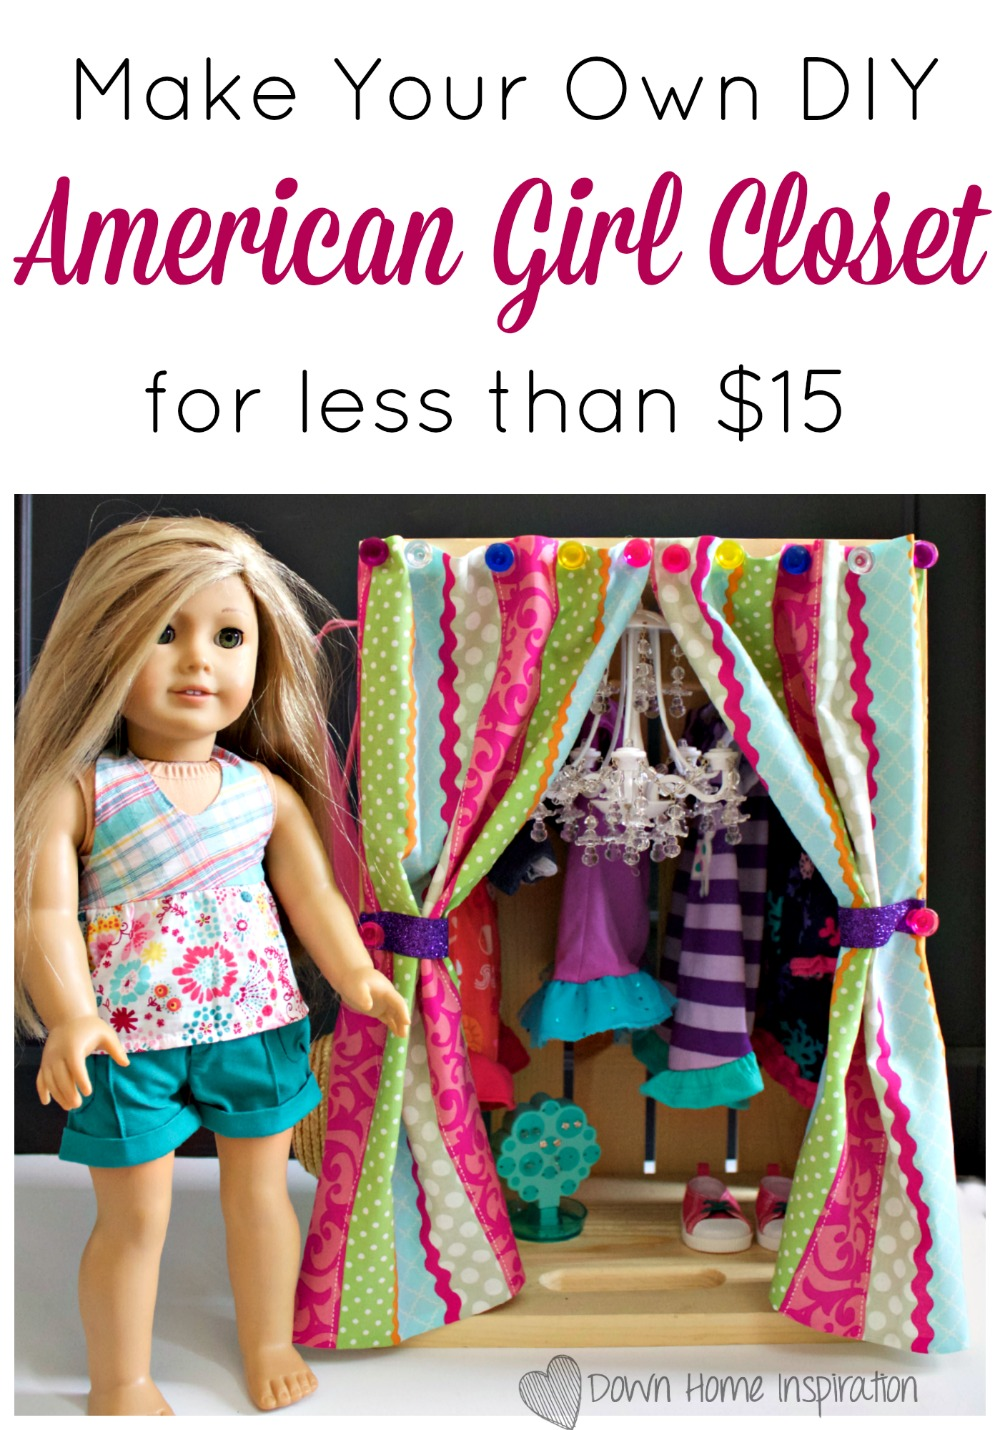 American Girl Closet 1 Down Home Inspiration